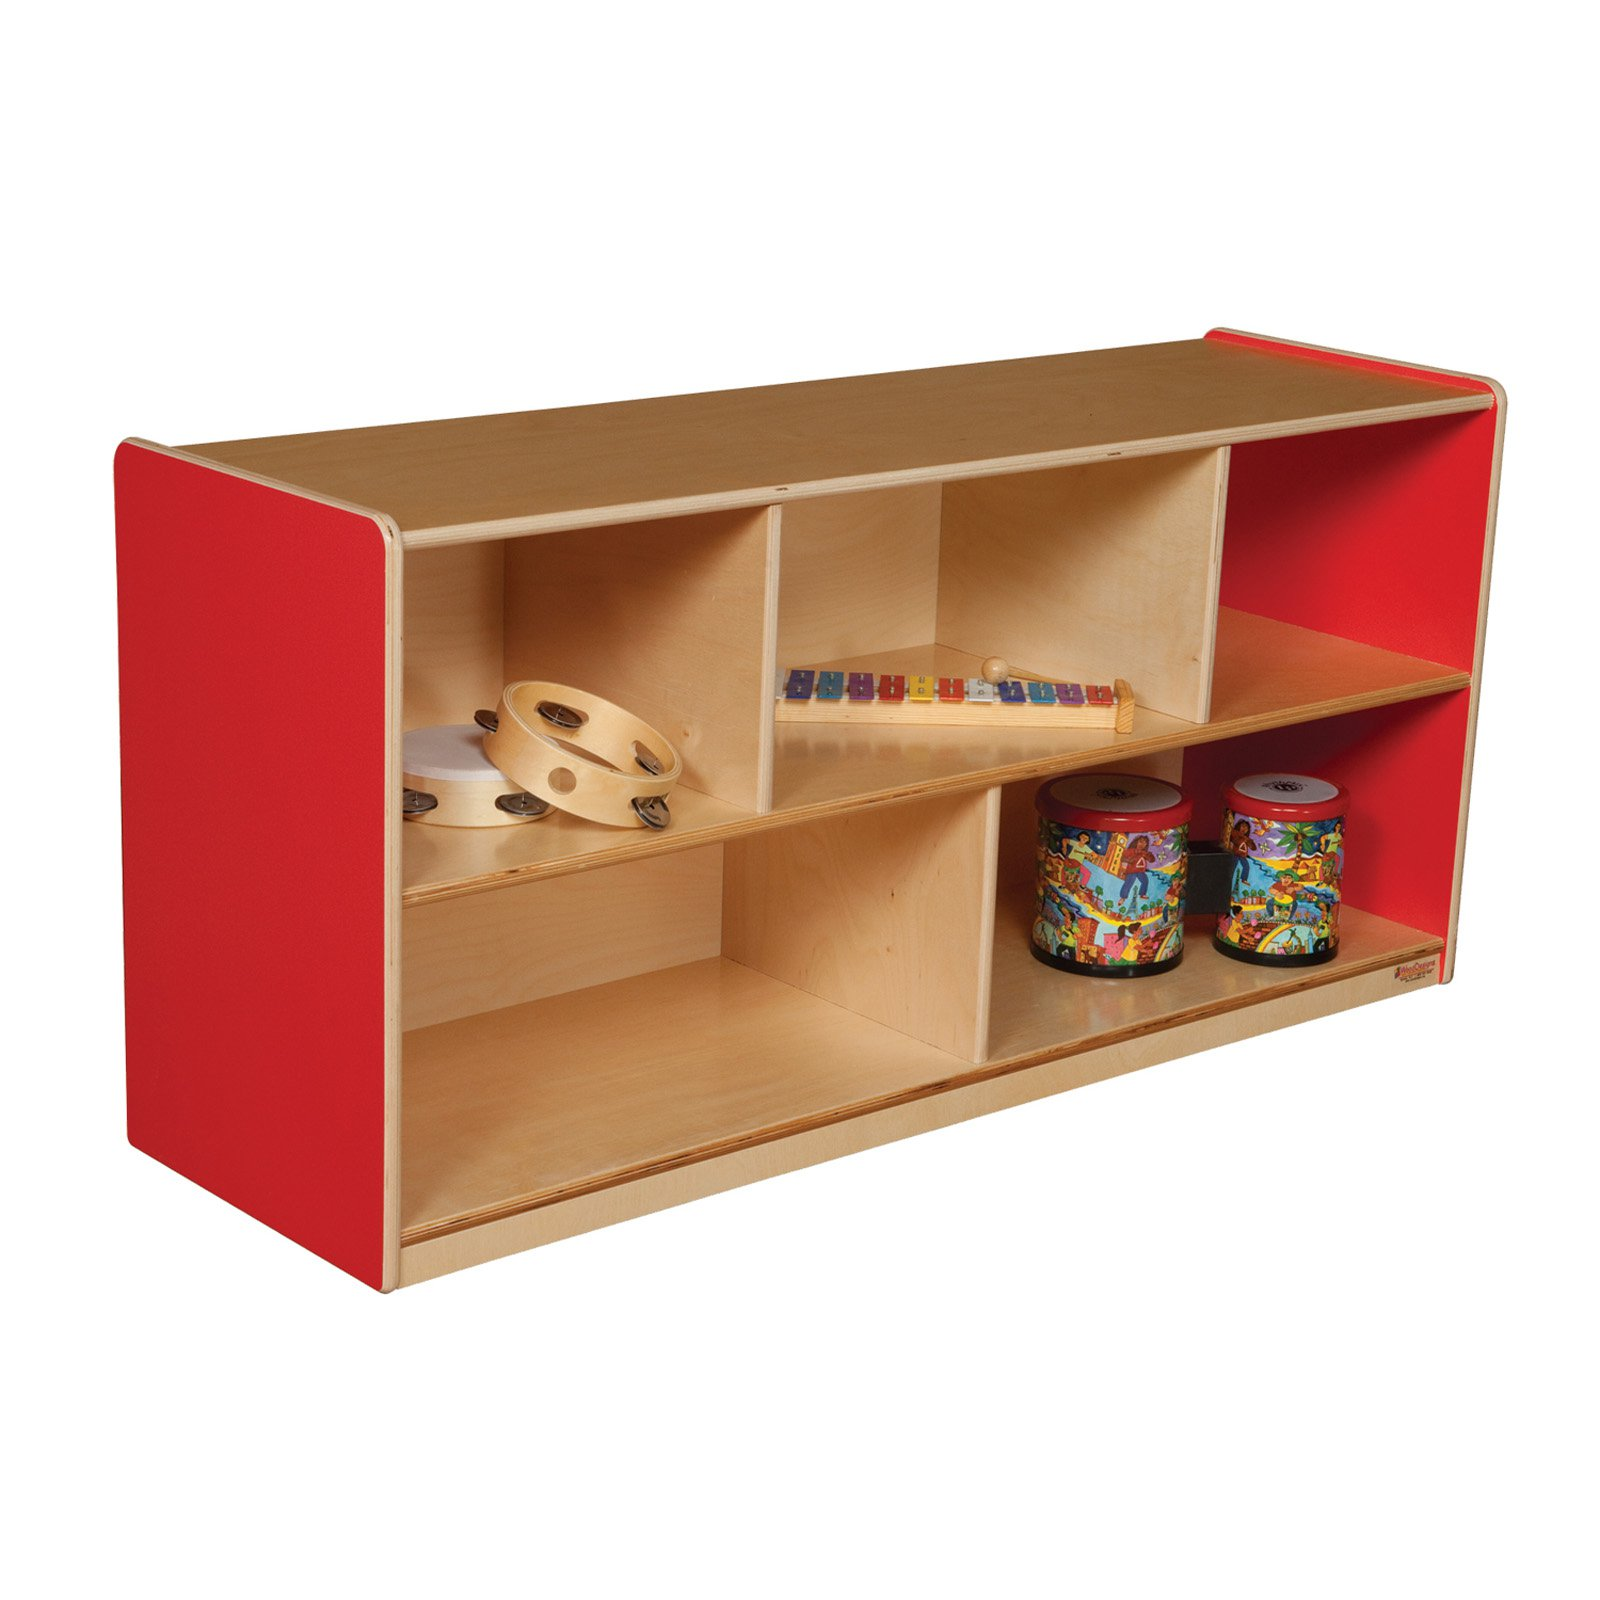 Wood Designs 24H in. Single Storage